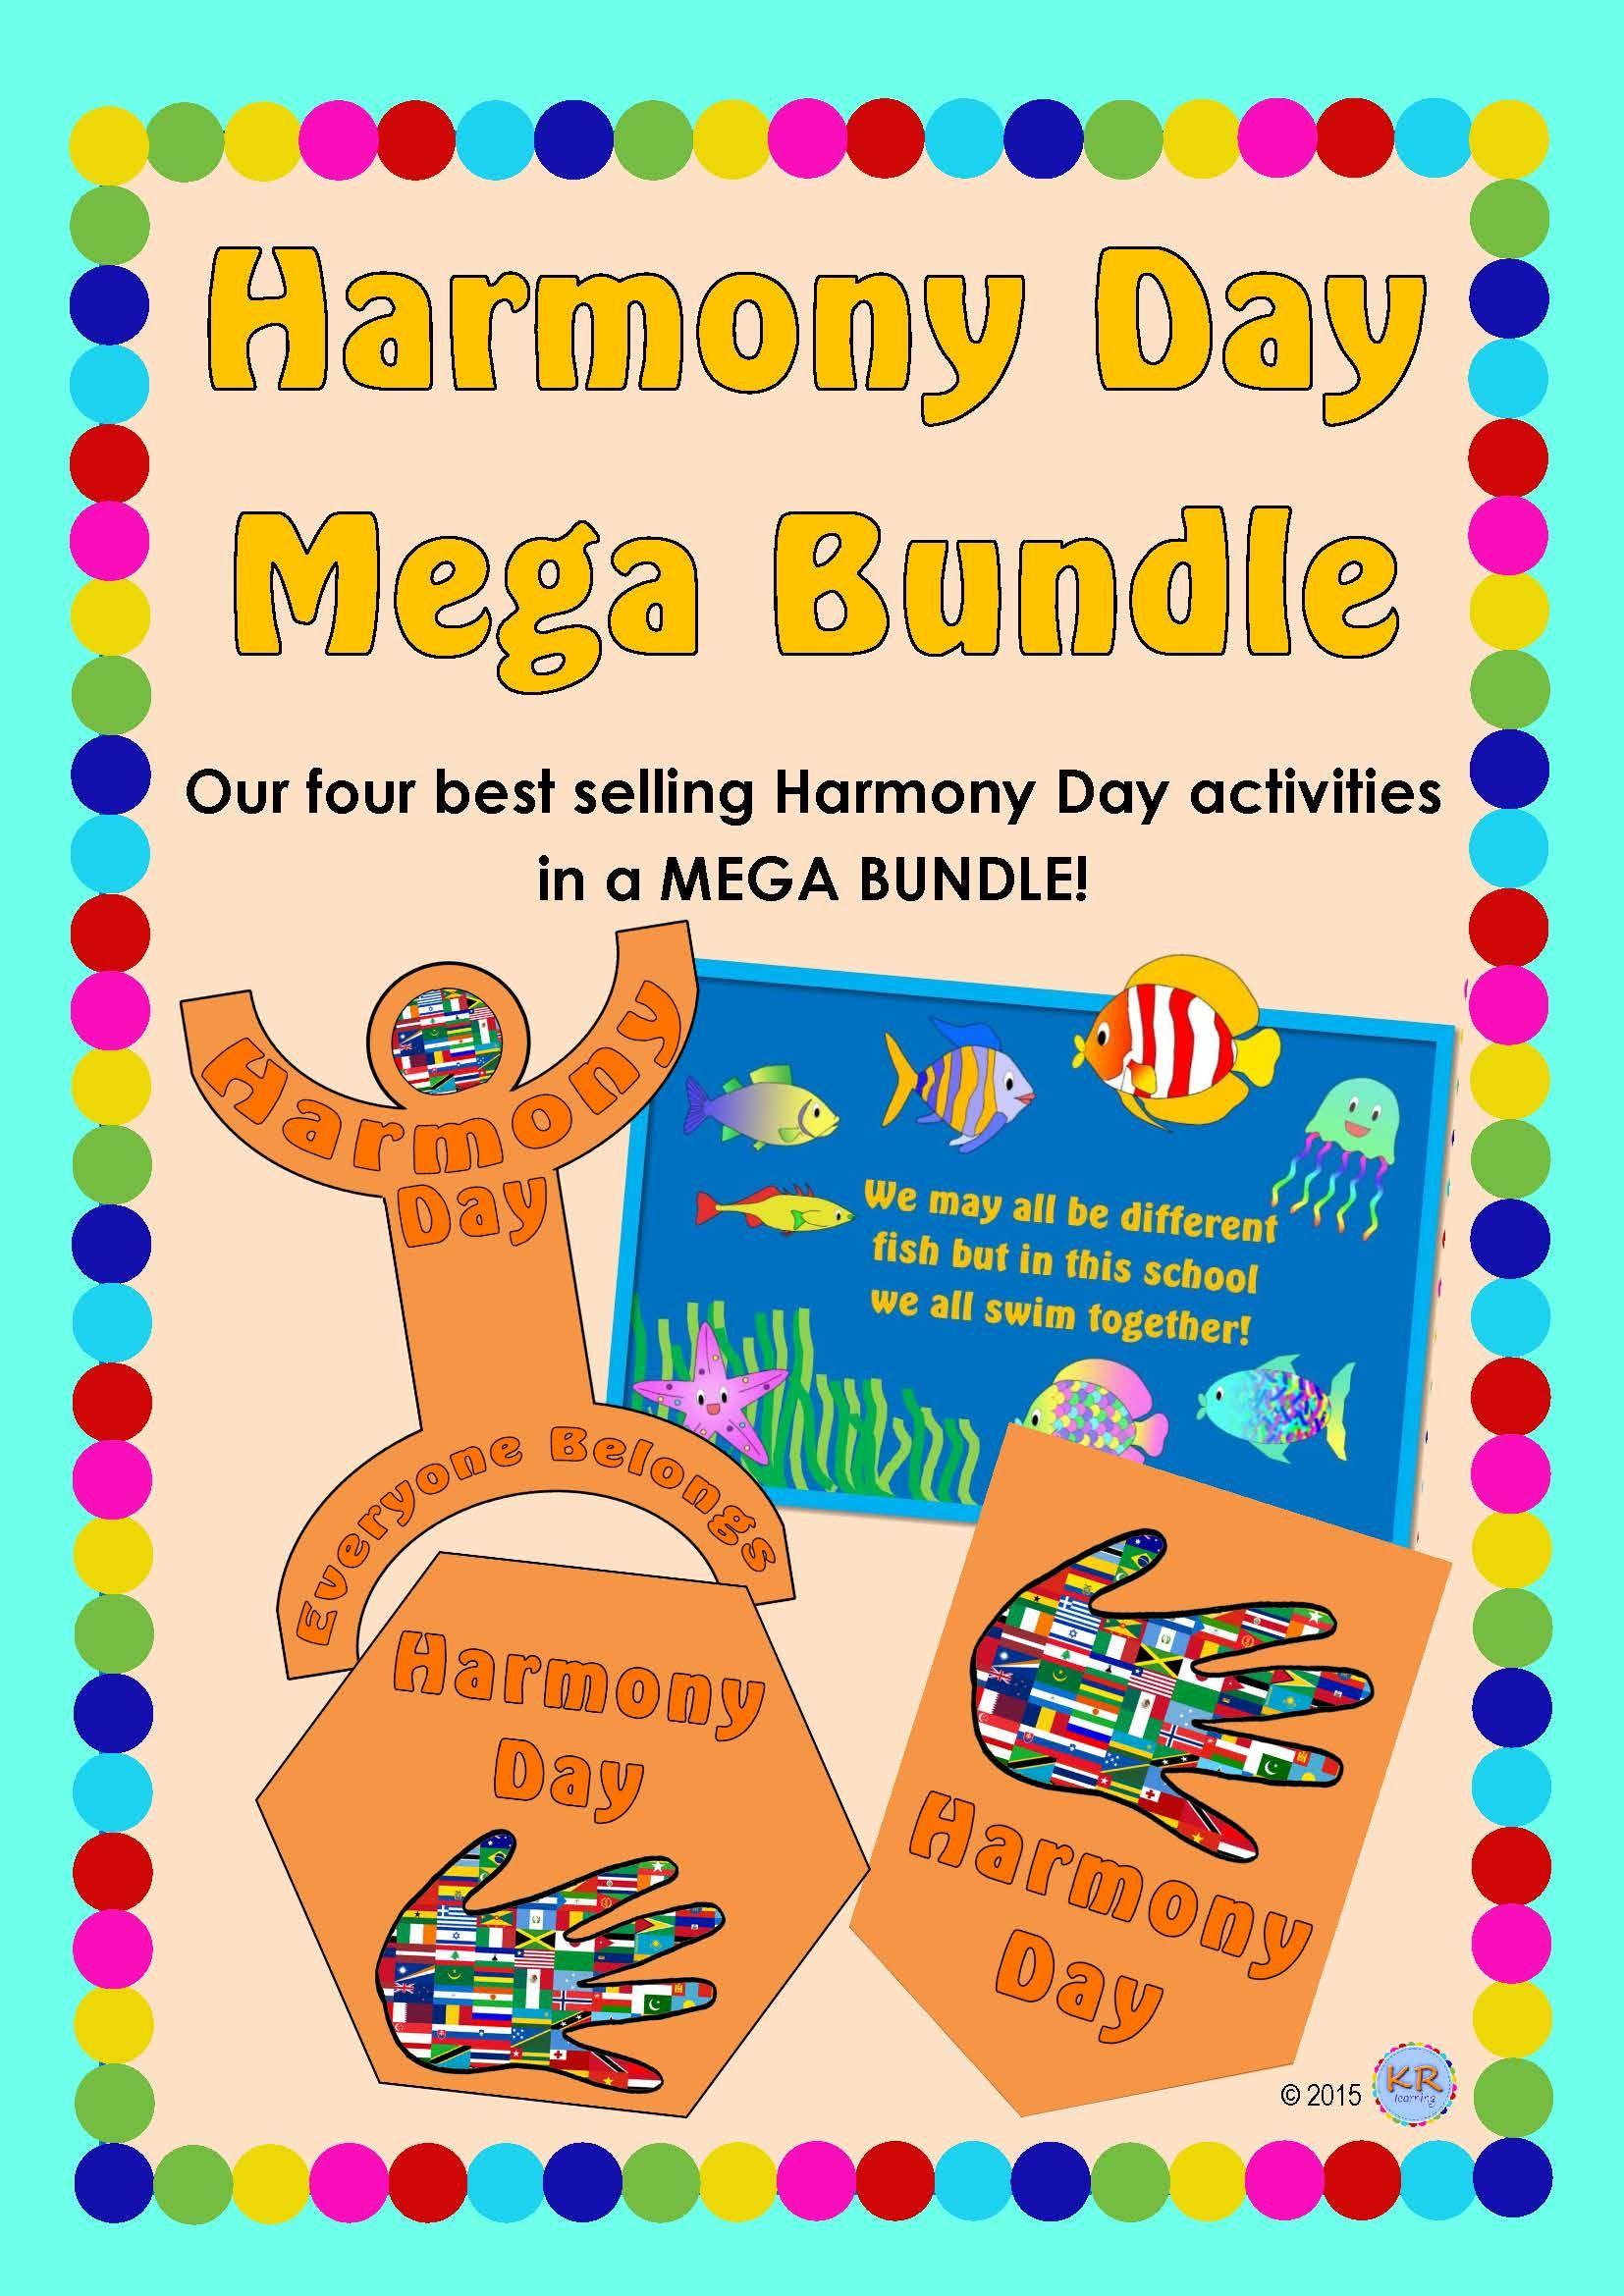 9 Best Learning with Harmony Book Series images | Book ...